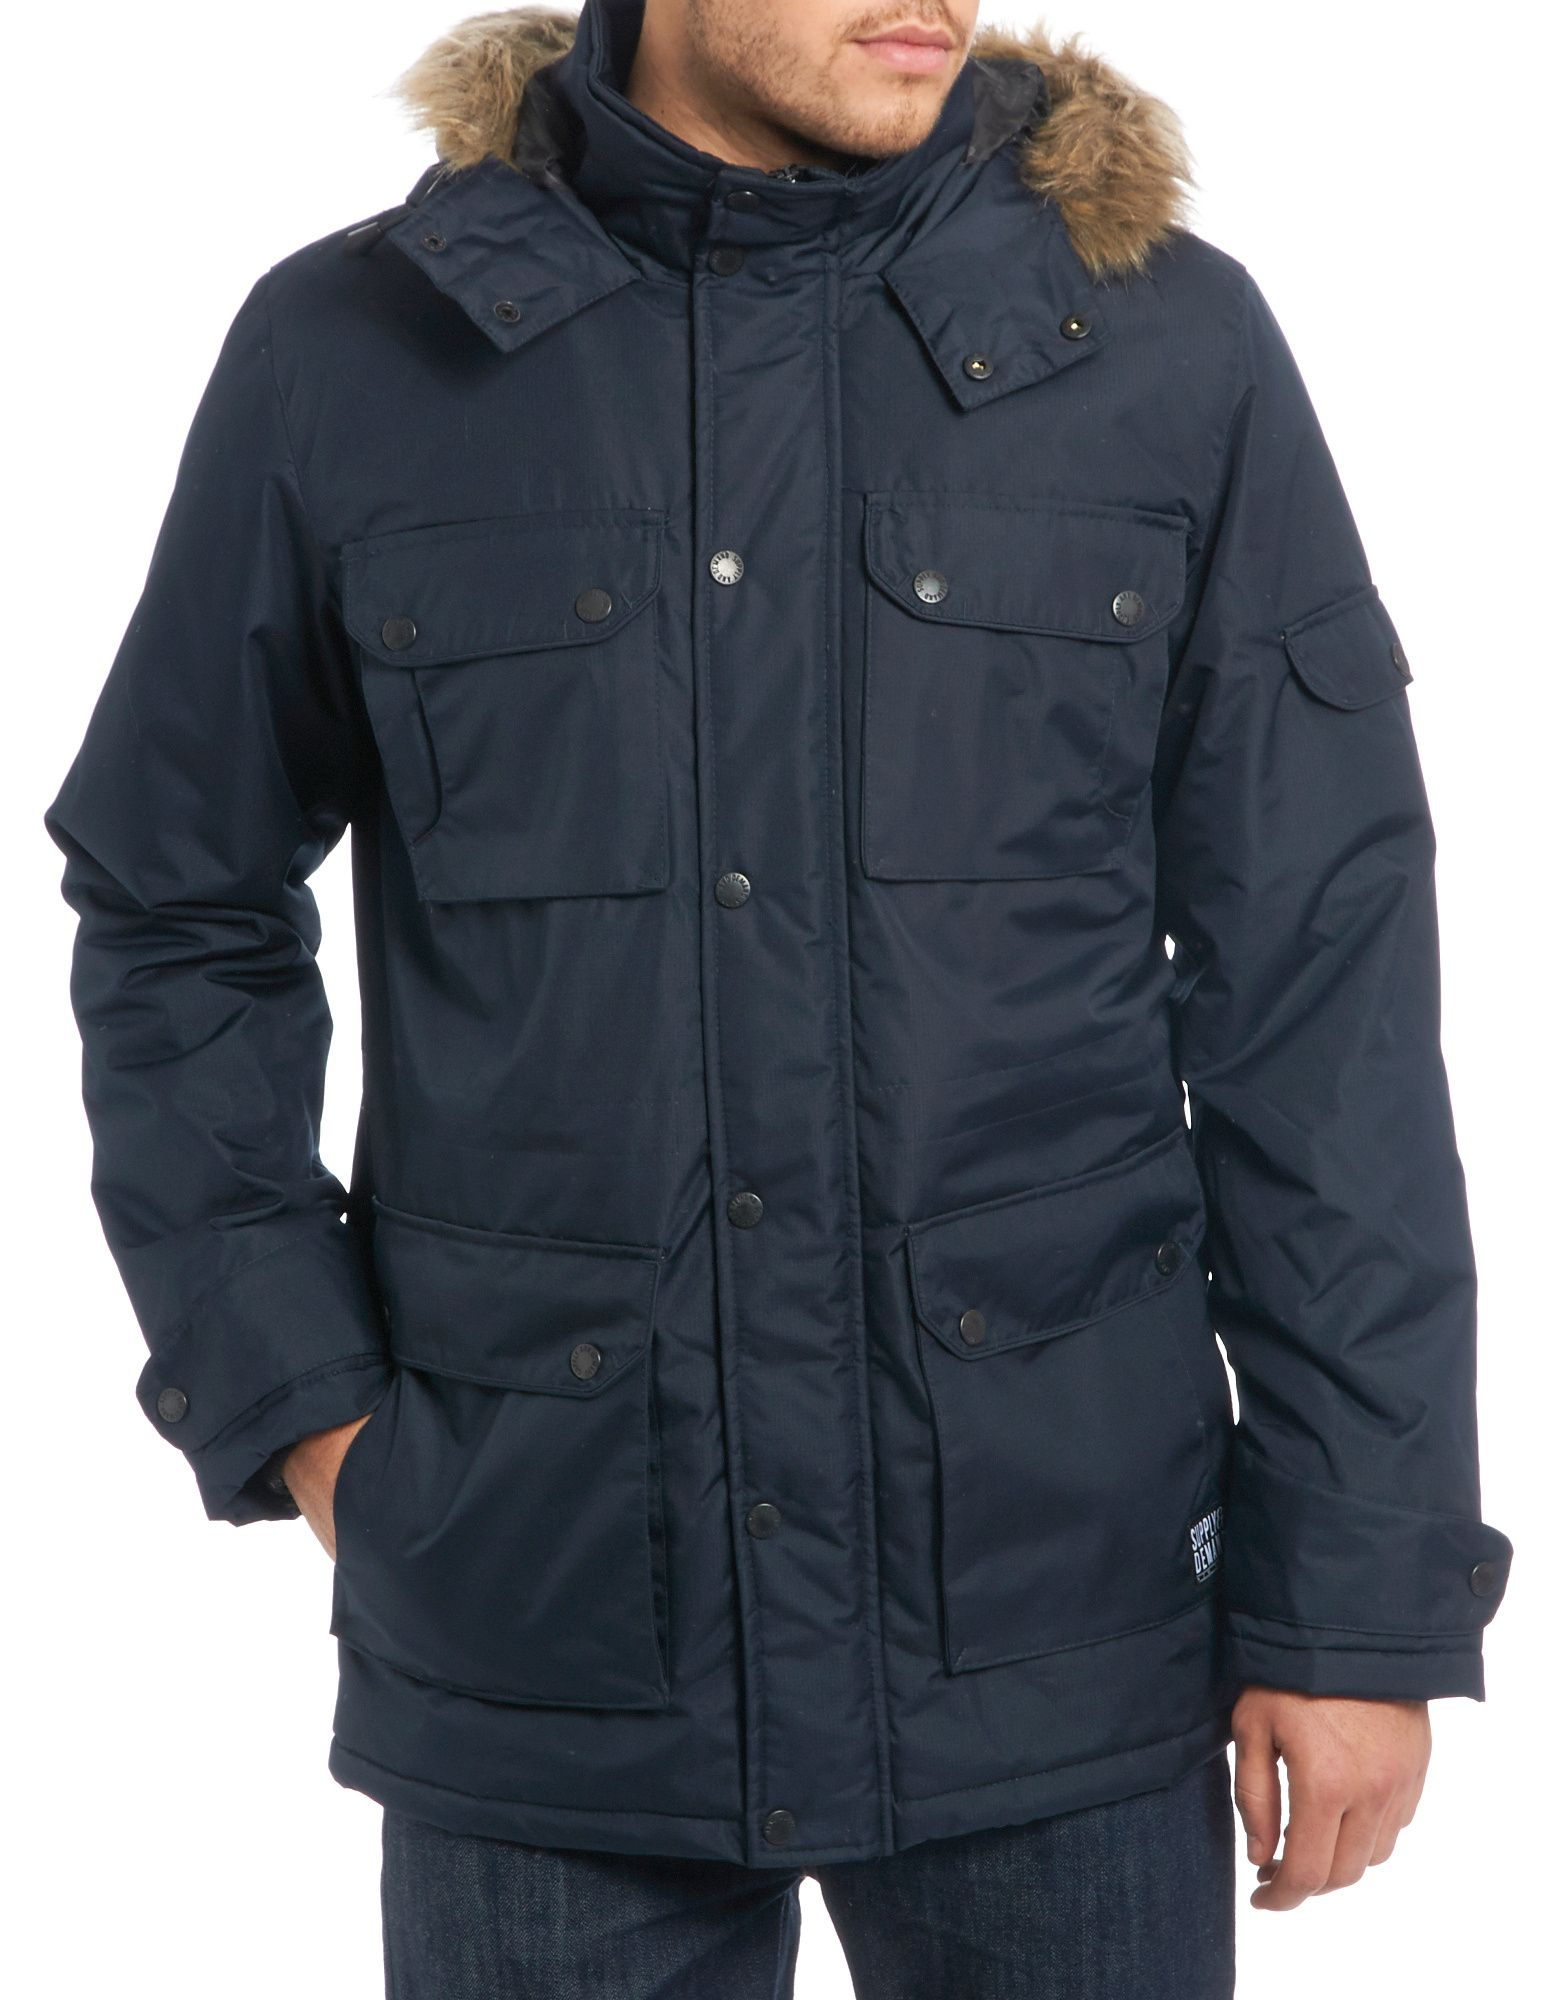 Supply & Demand Parker Jacket